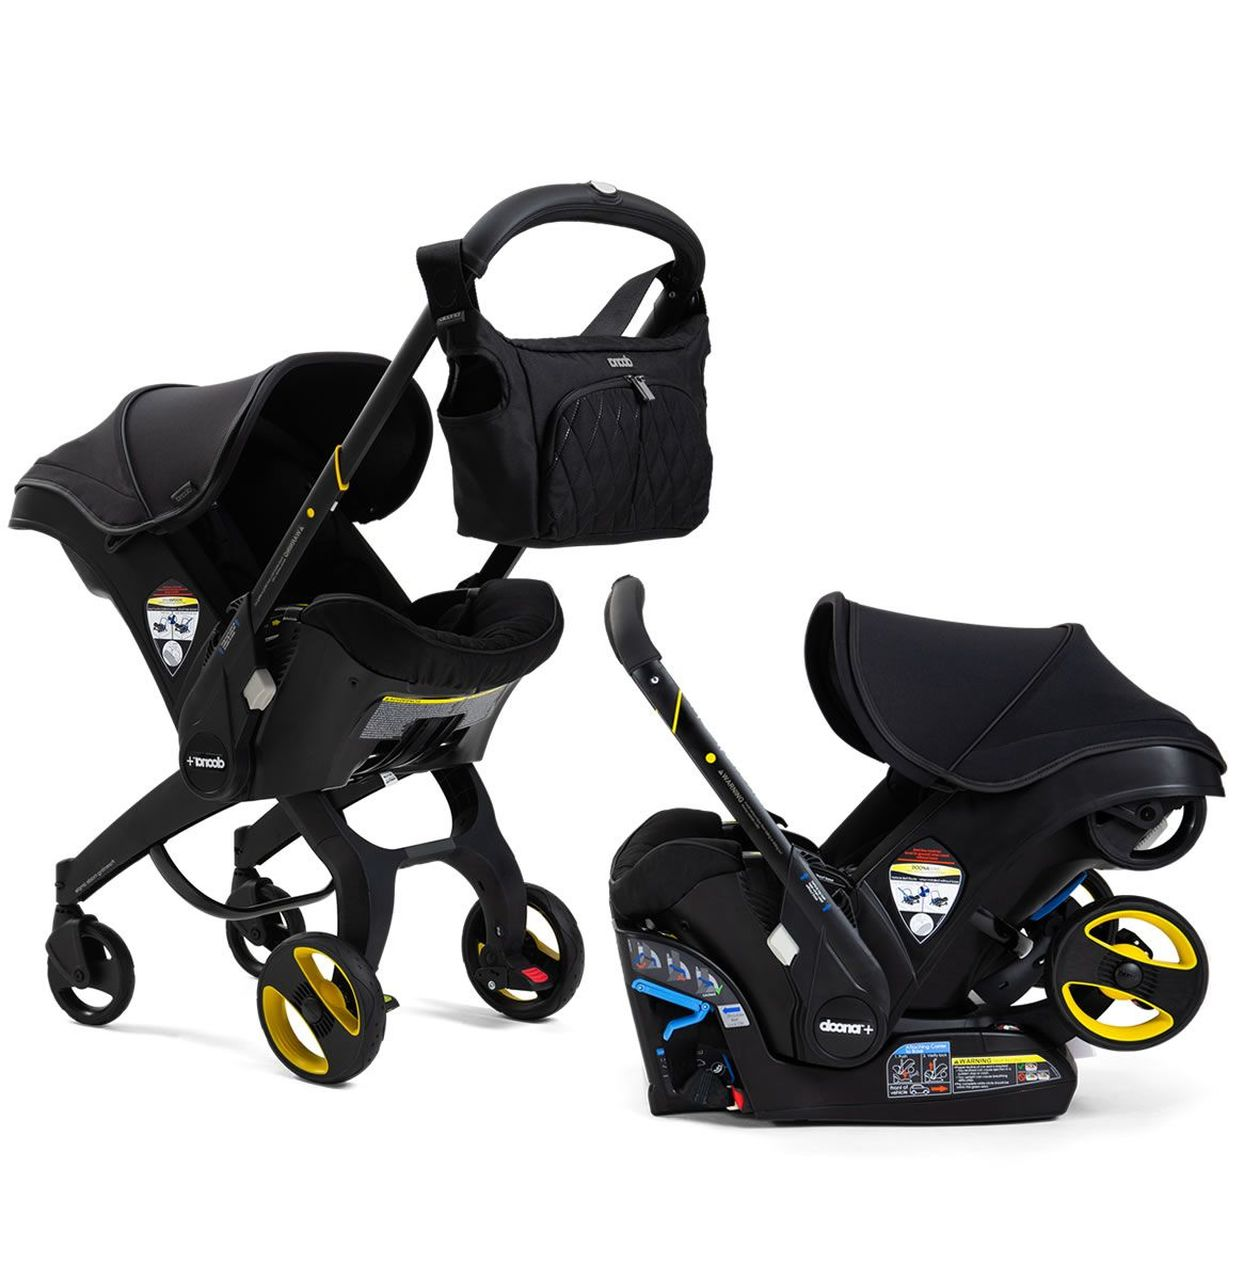 Doona Infant Car Seat with Base - Midnight   The Baby Cubby